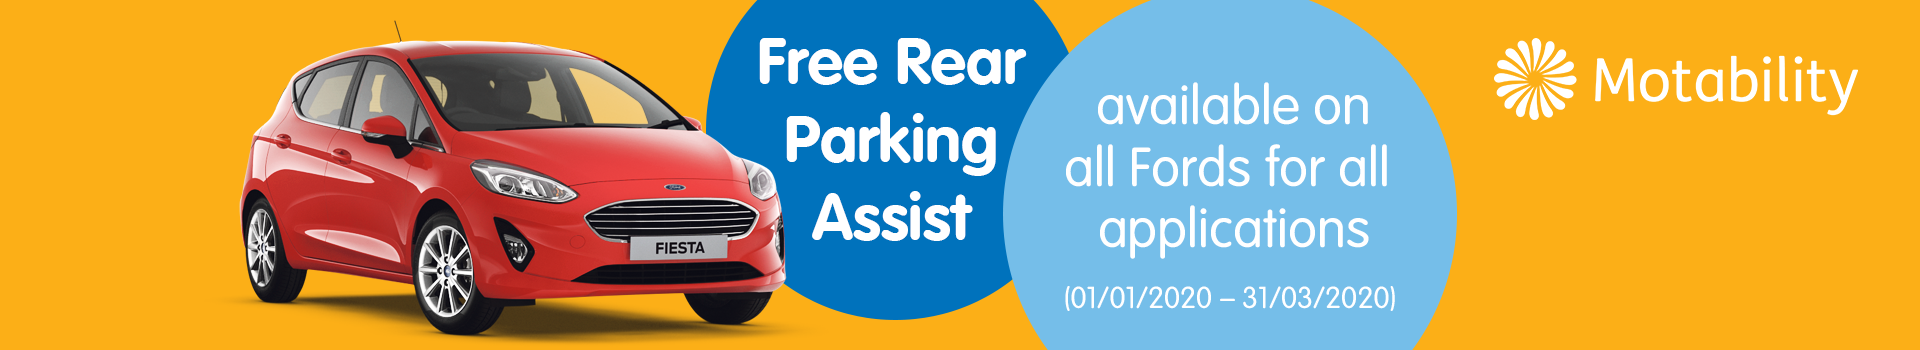 Free Rear Parking Assist